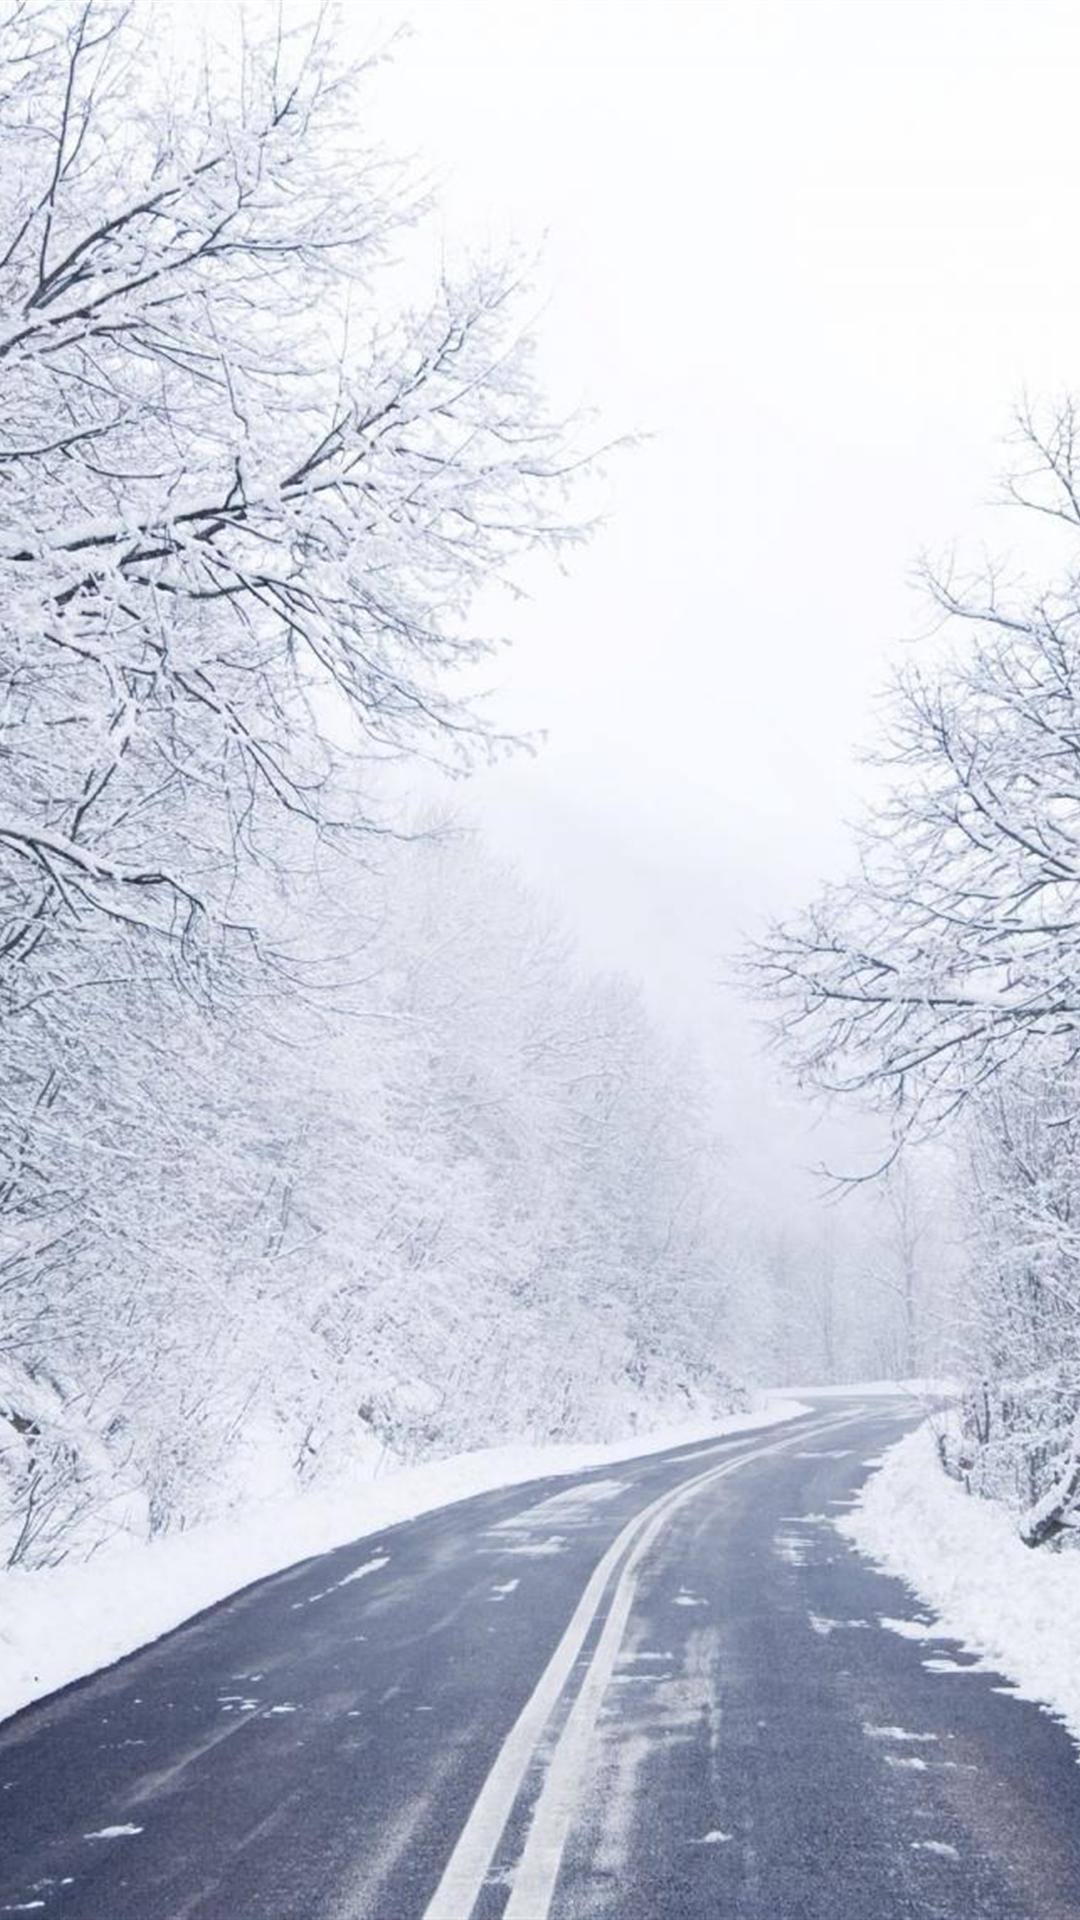 download cold winter road wallpapers for iphone 6 plus 1080x1920